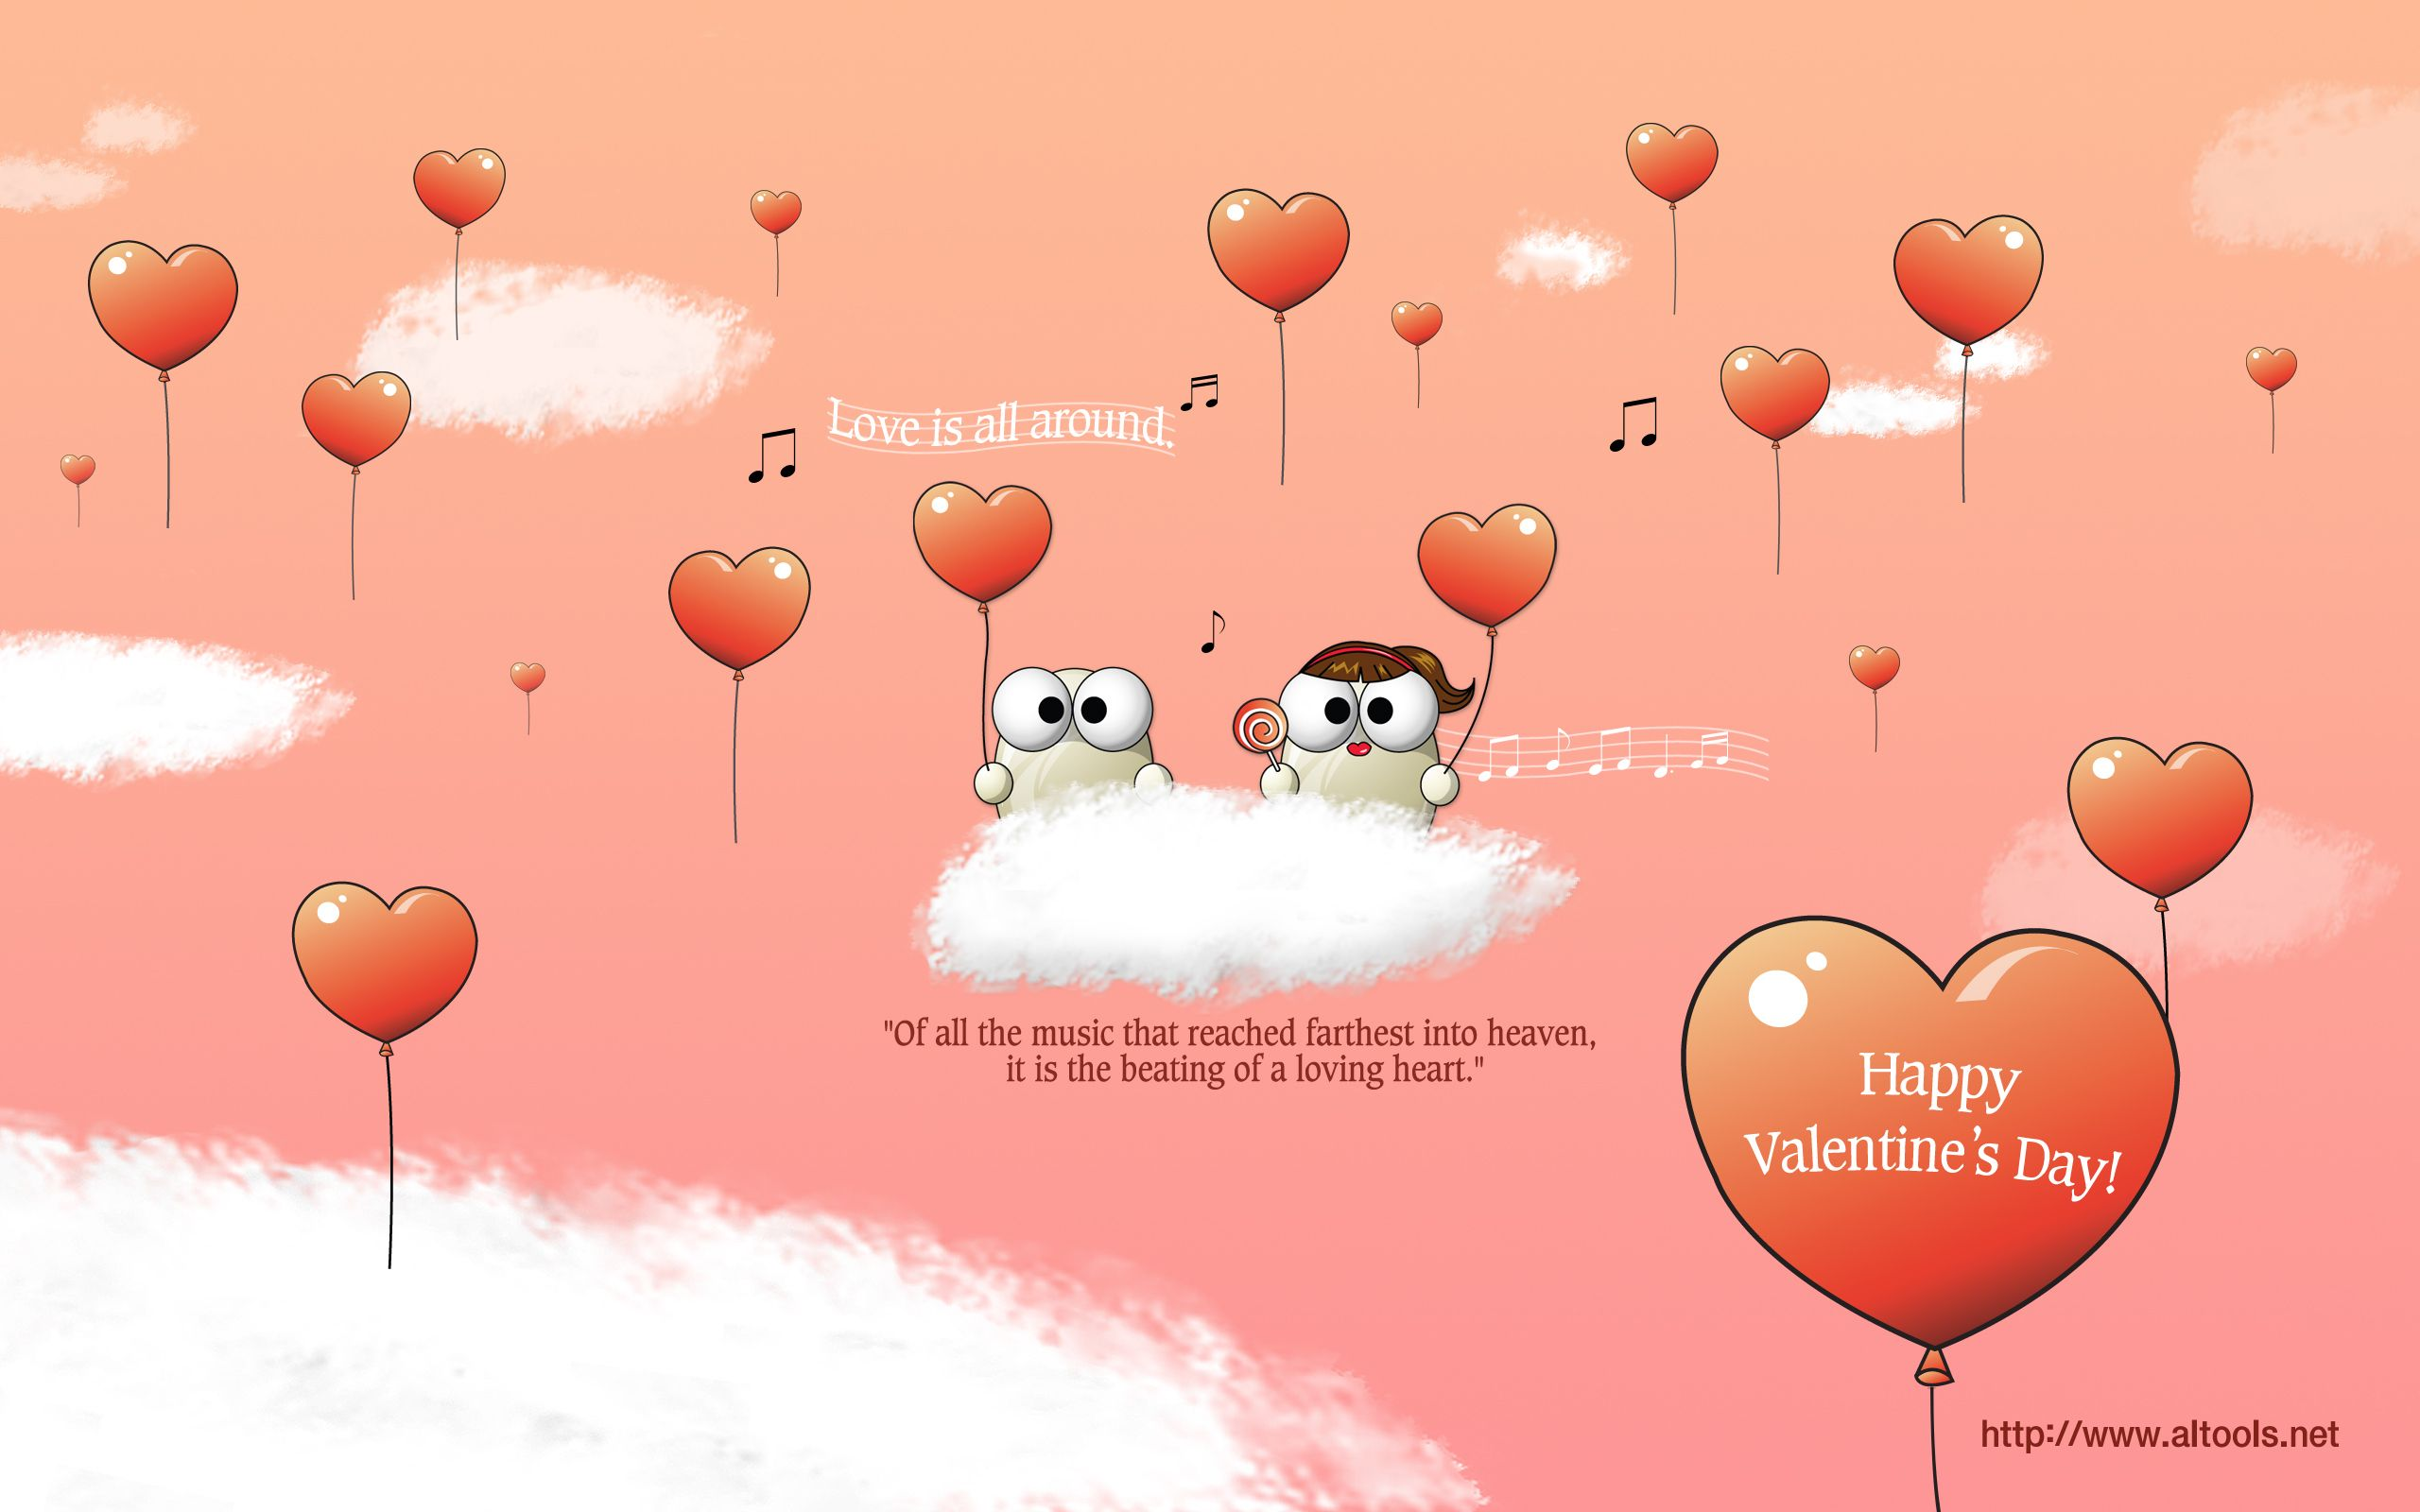 Happy Valentines Day Inspirational Quotes For Kids Decals Love Is All Around Valentine Quotes For Valentines Wallpaper Valentines Day Funny Disney Valentines